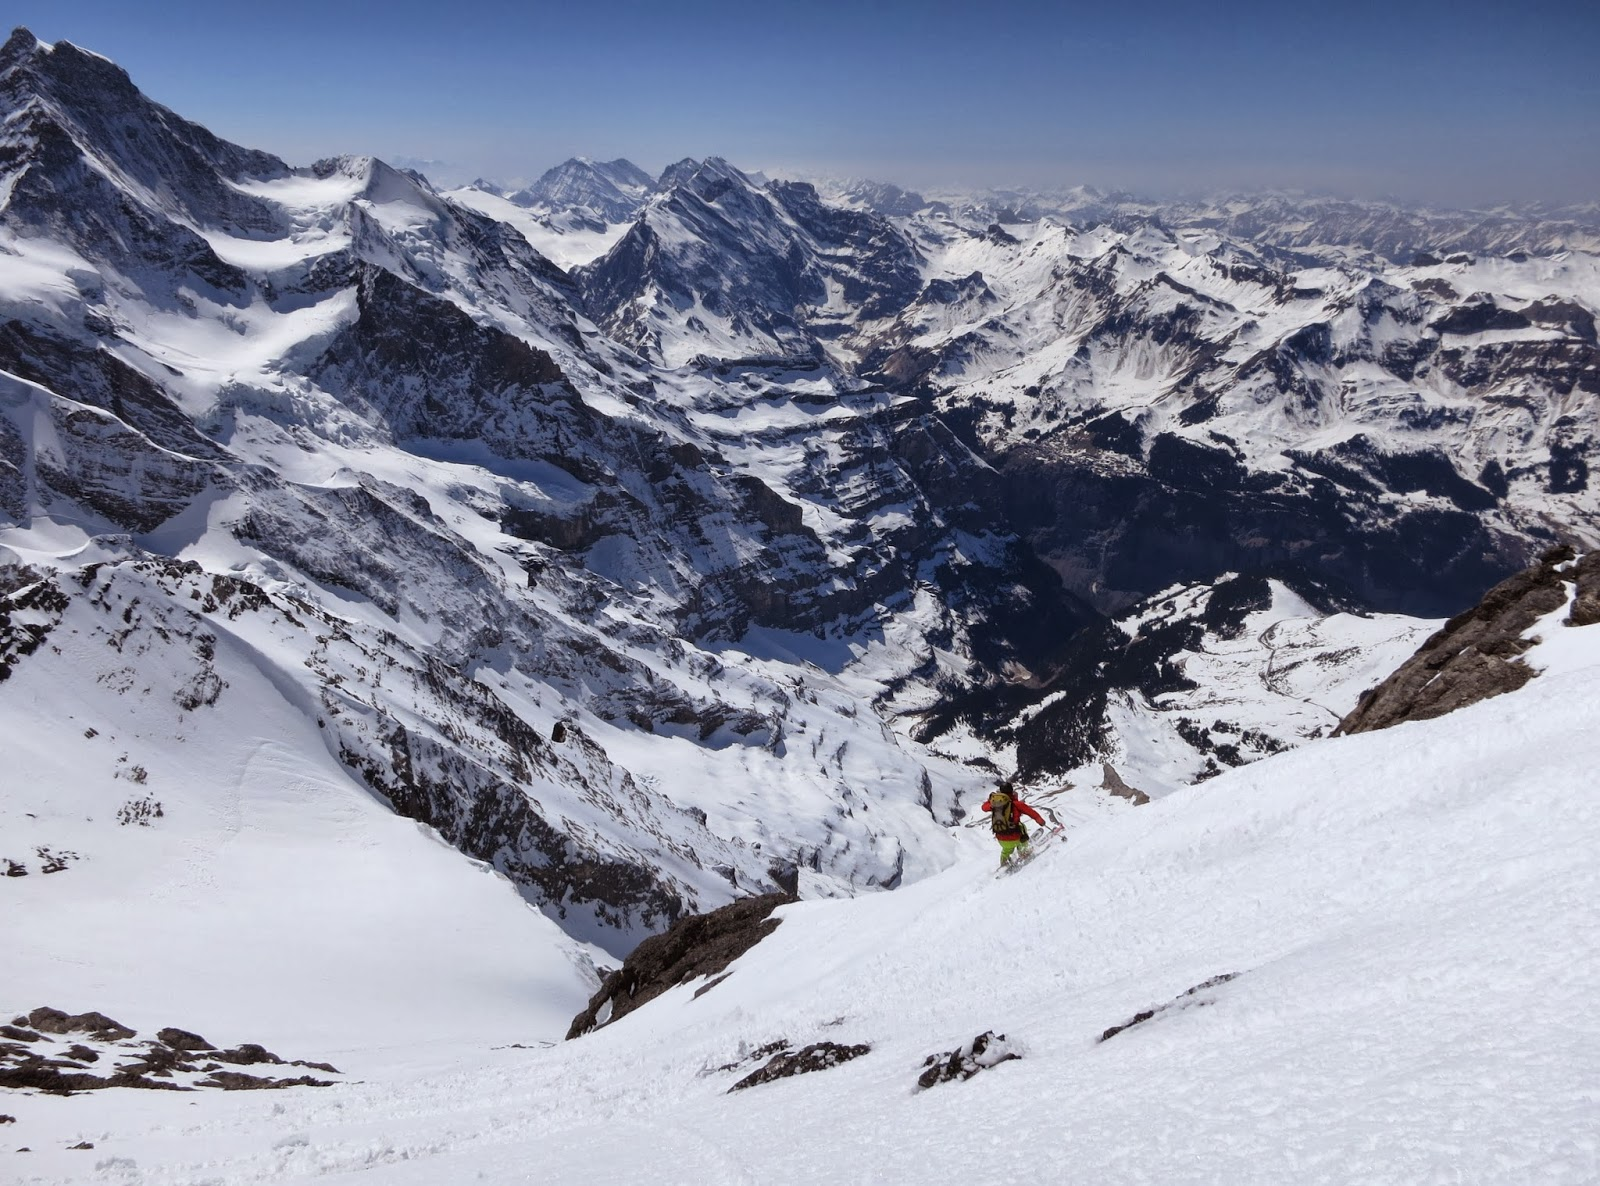 More Eiger ski. & Scottish Climbers: Un-pisted Alpine: 3 Days of Steep Skiing